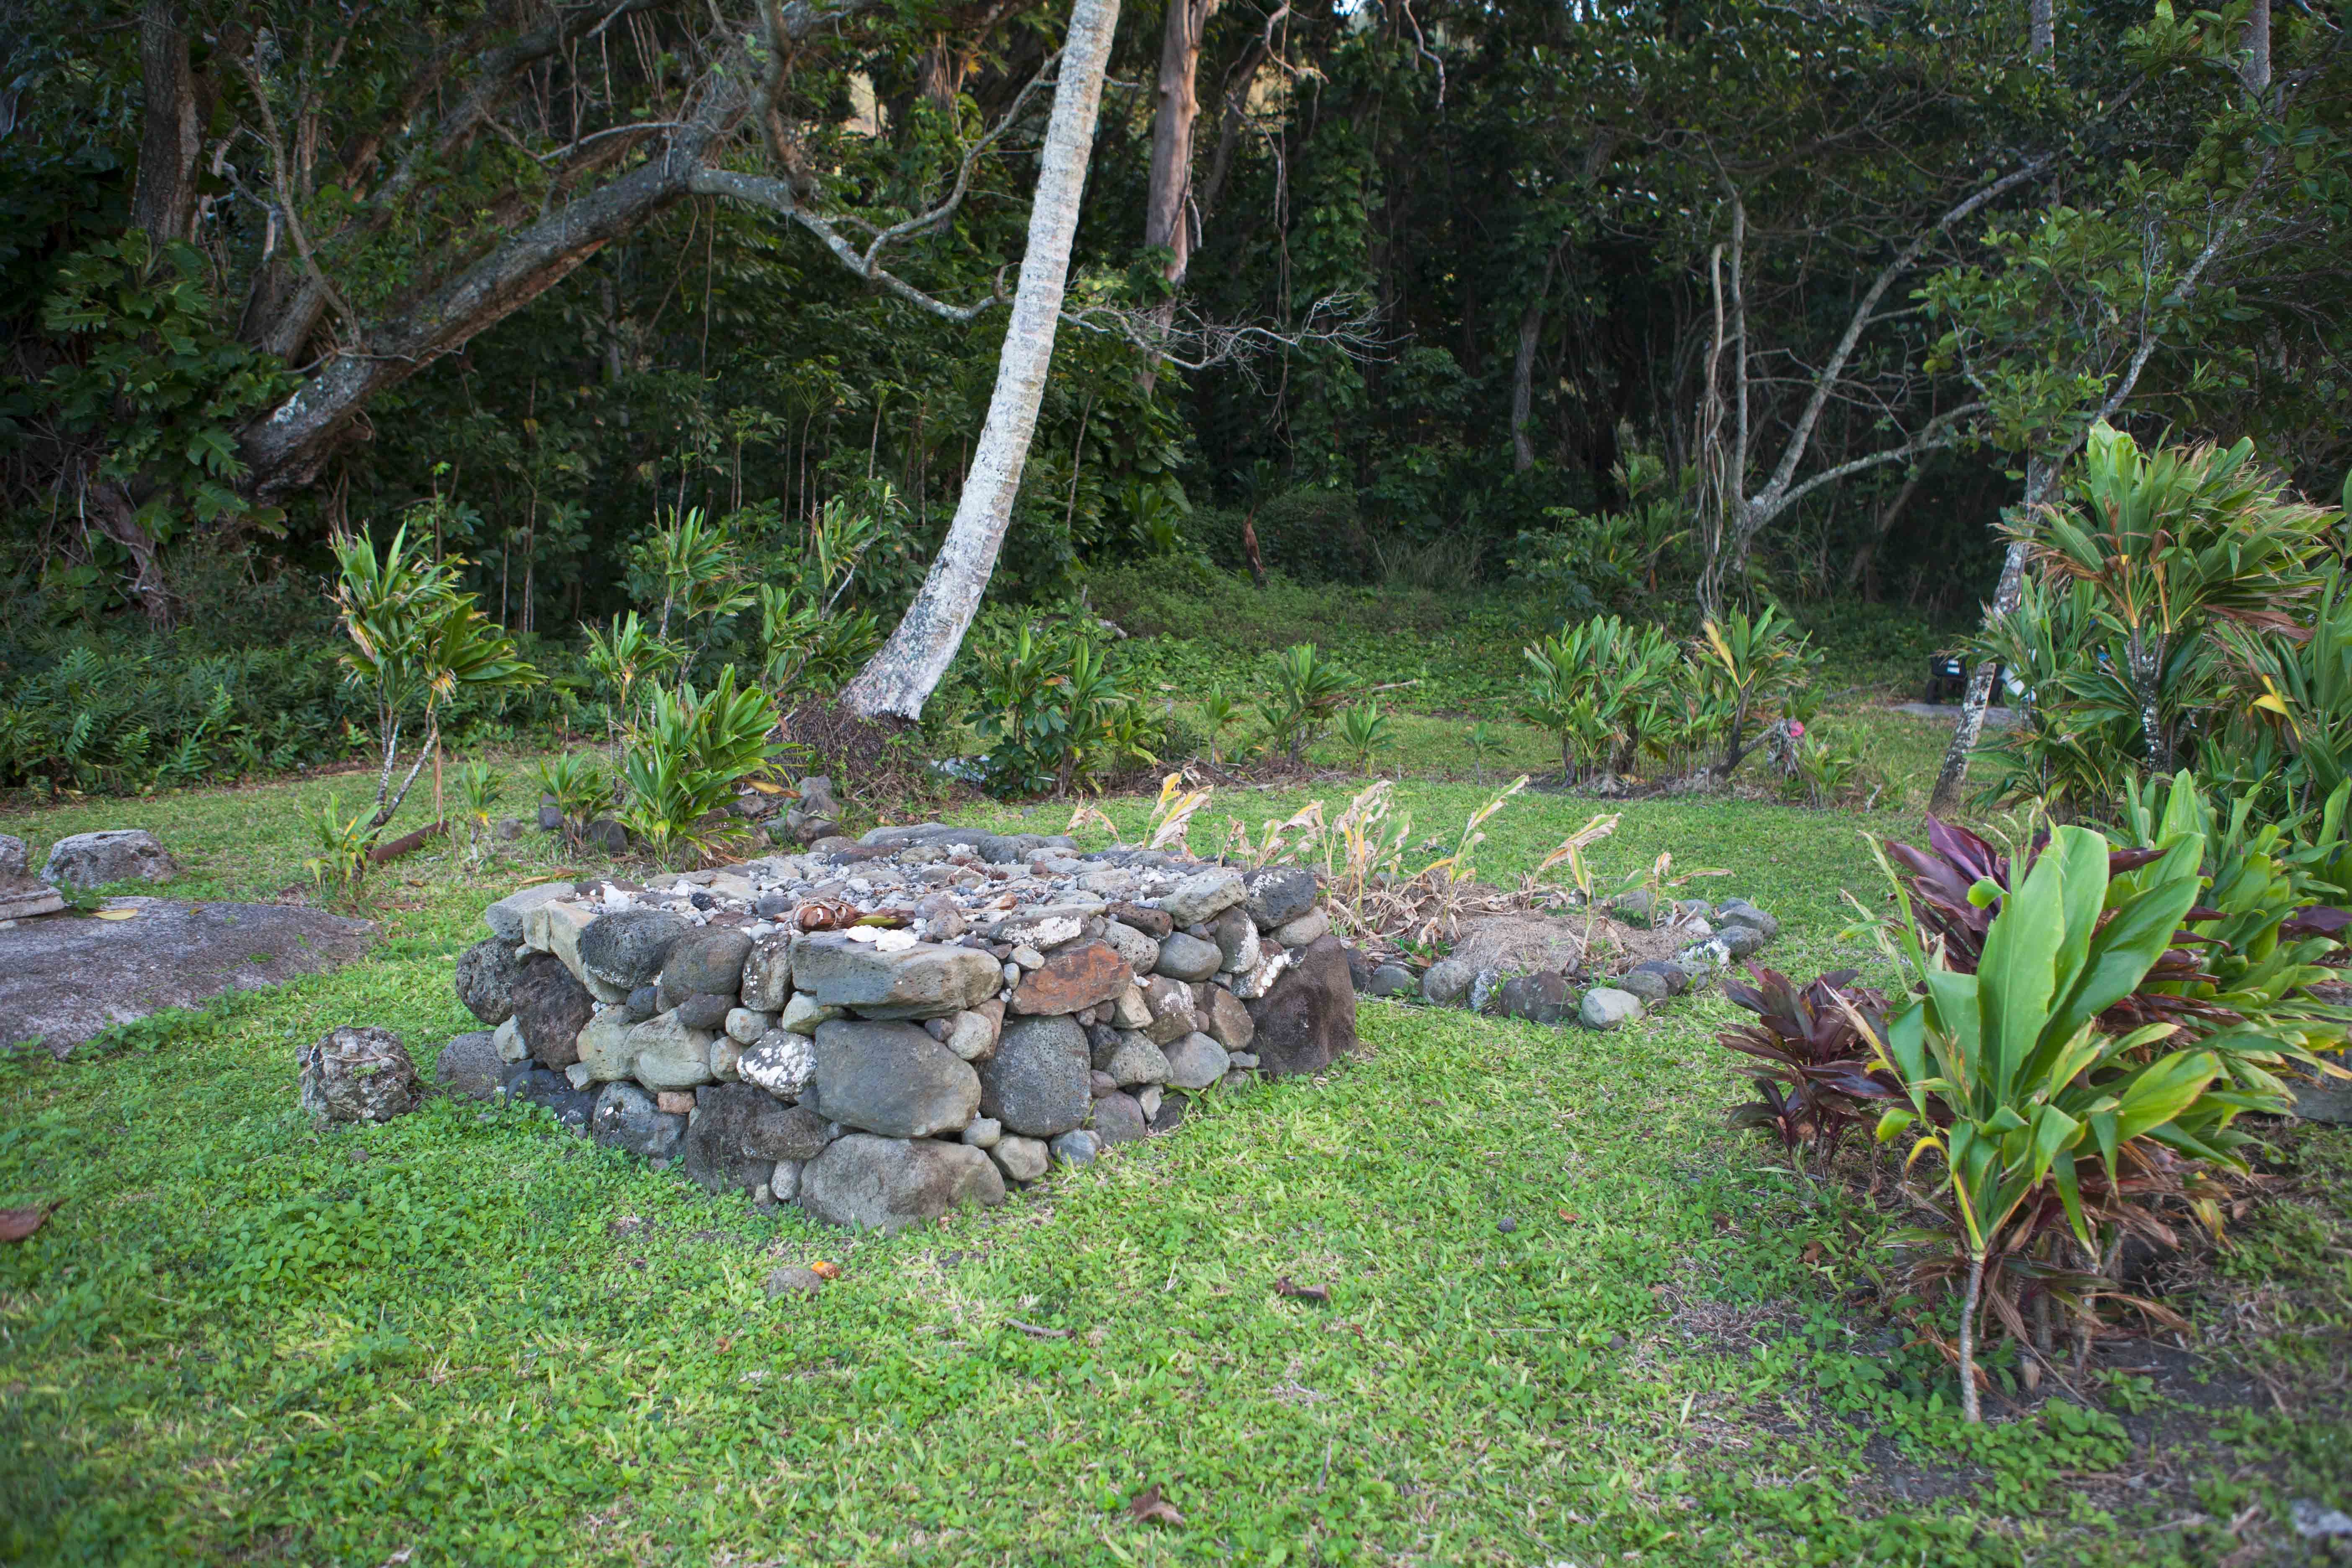 An example of a ko'a shrine near Kahana Stream - photo courtesy of Active Oahu